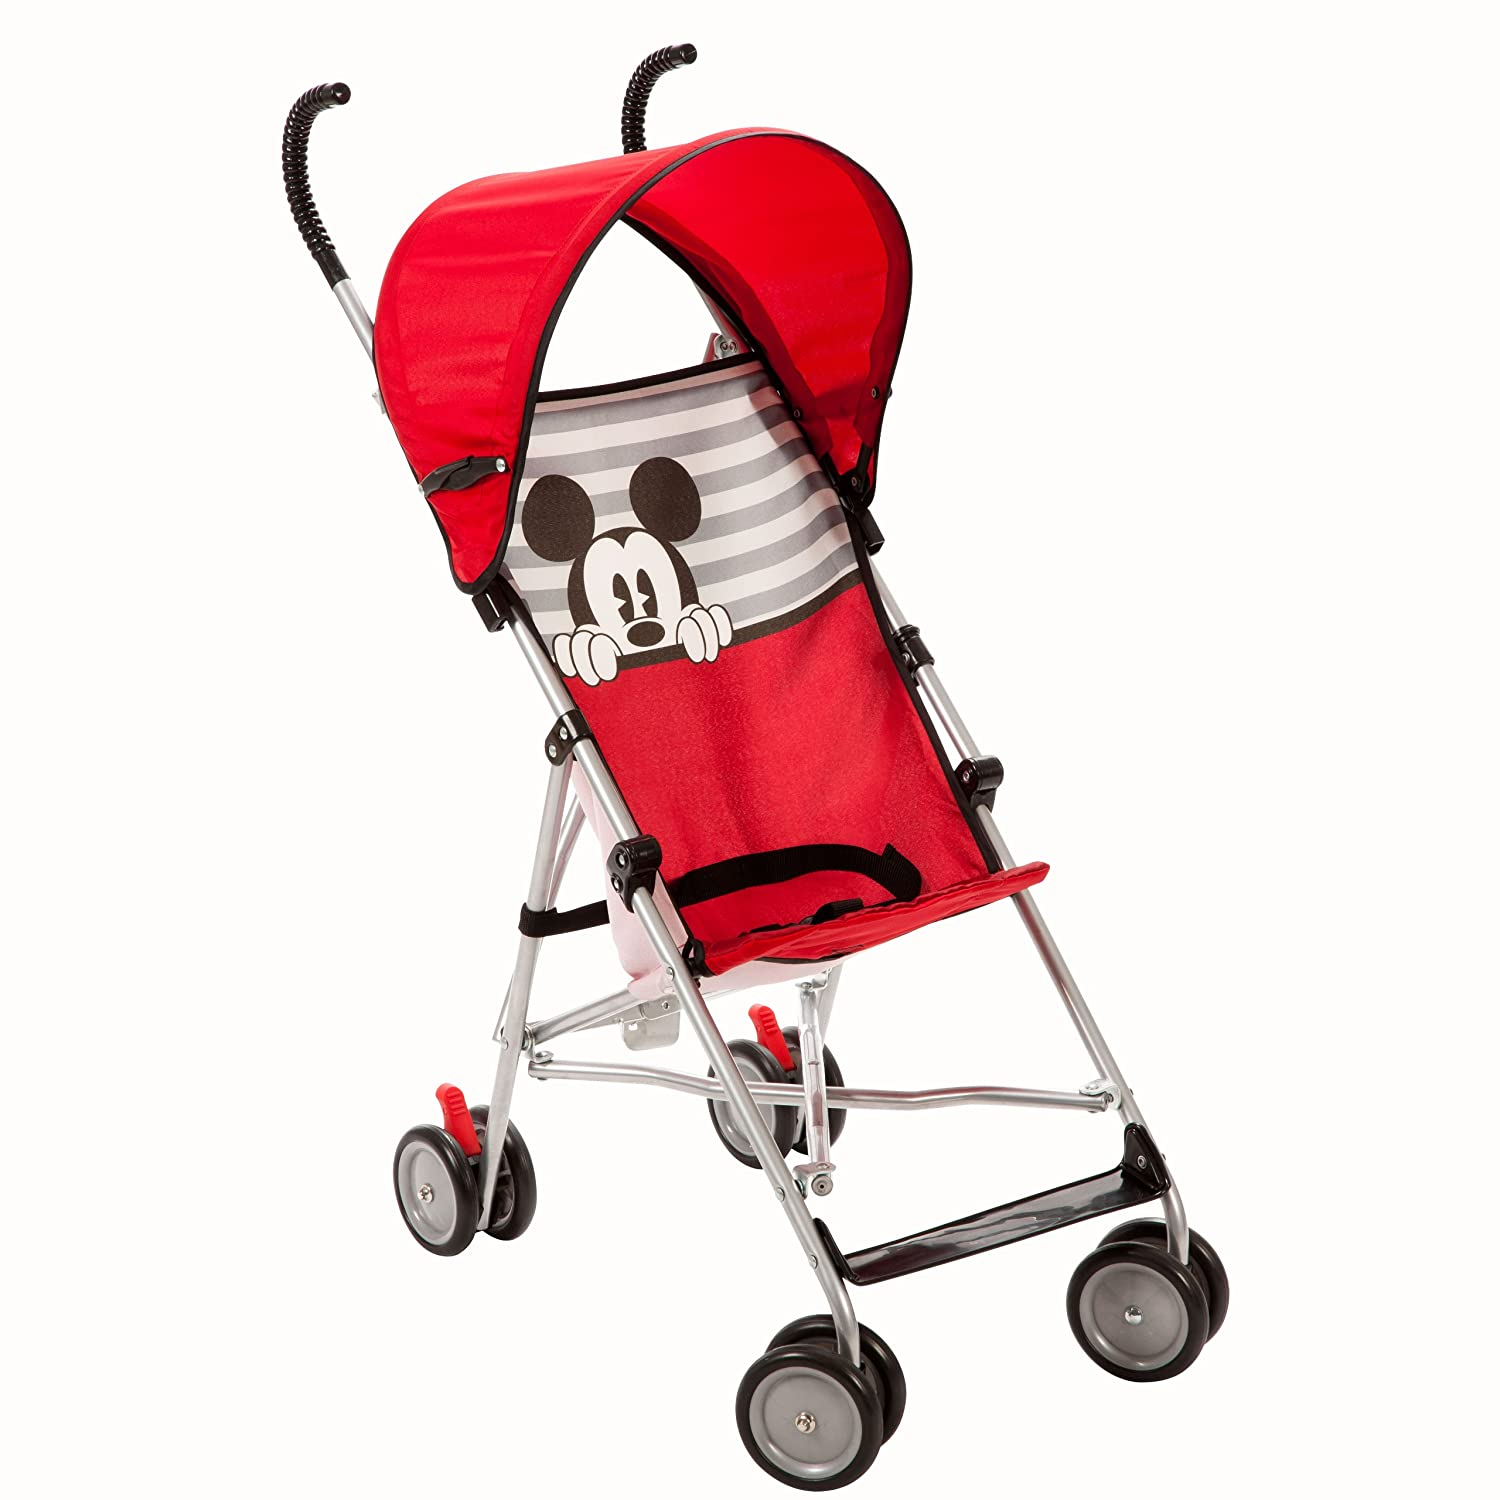 Amazon.com  Disney Umbrella Stroller with Canopy Mickey Stripes Prior Model)  Baby Strollers  Baby  sc 1 st  Amazon.com & Amazon.com : Disney Umbrella Stroller with Canopy Mickey Stripes ...